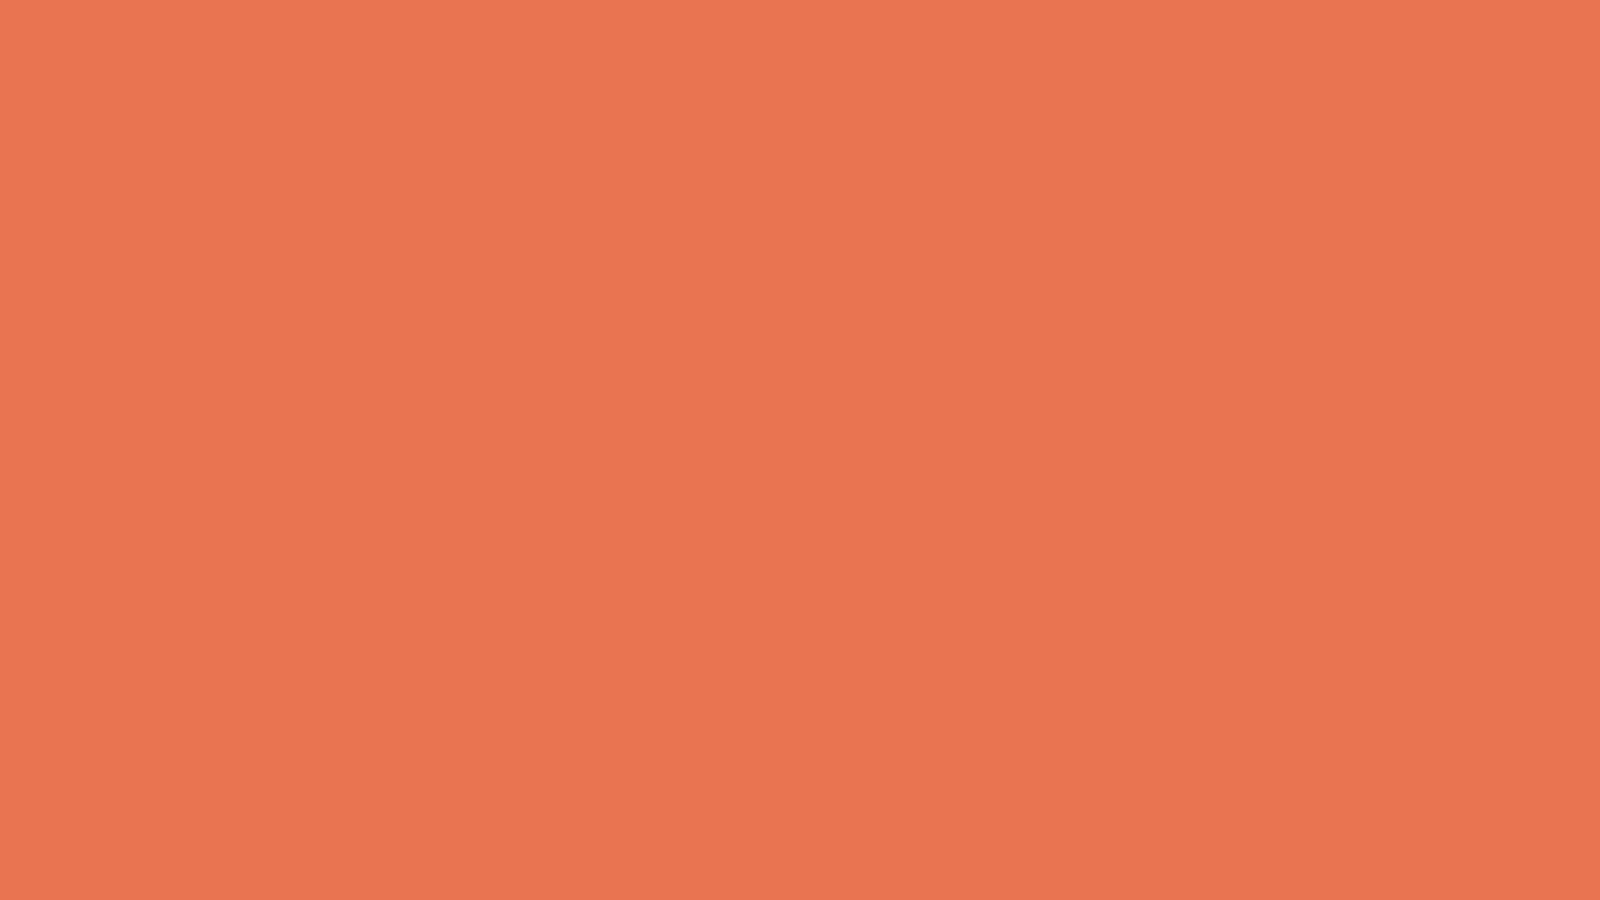 1600x900 Burnt Sienna Solid Color Background